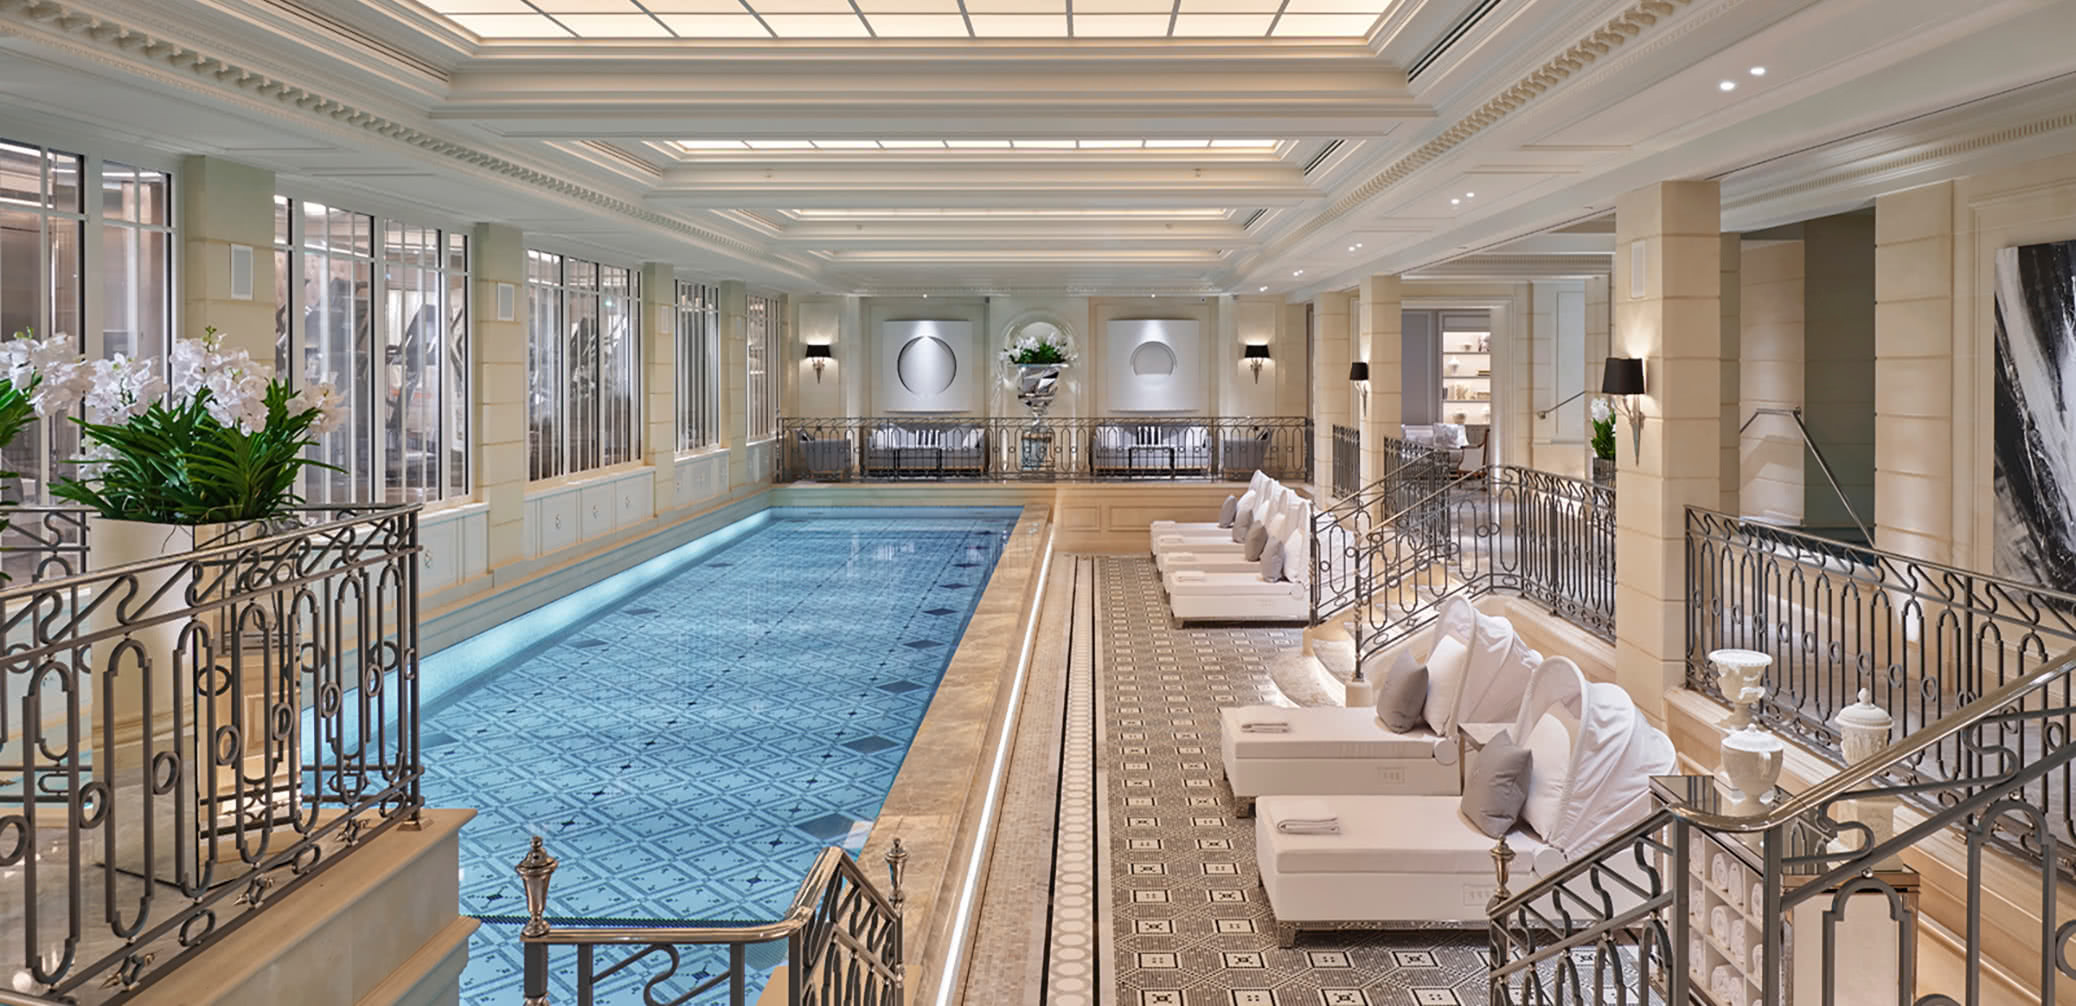 Top 10 Best Luxury Hotels With Pools In Paris